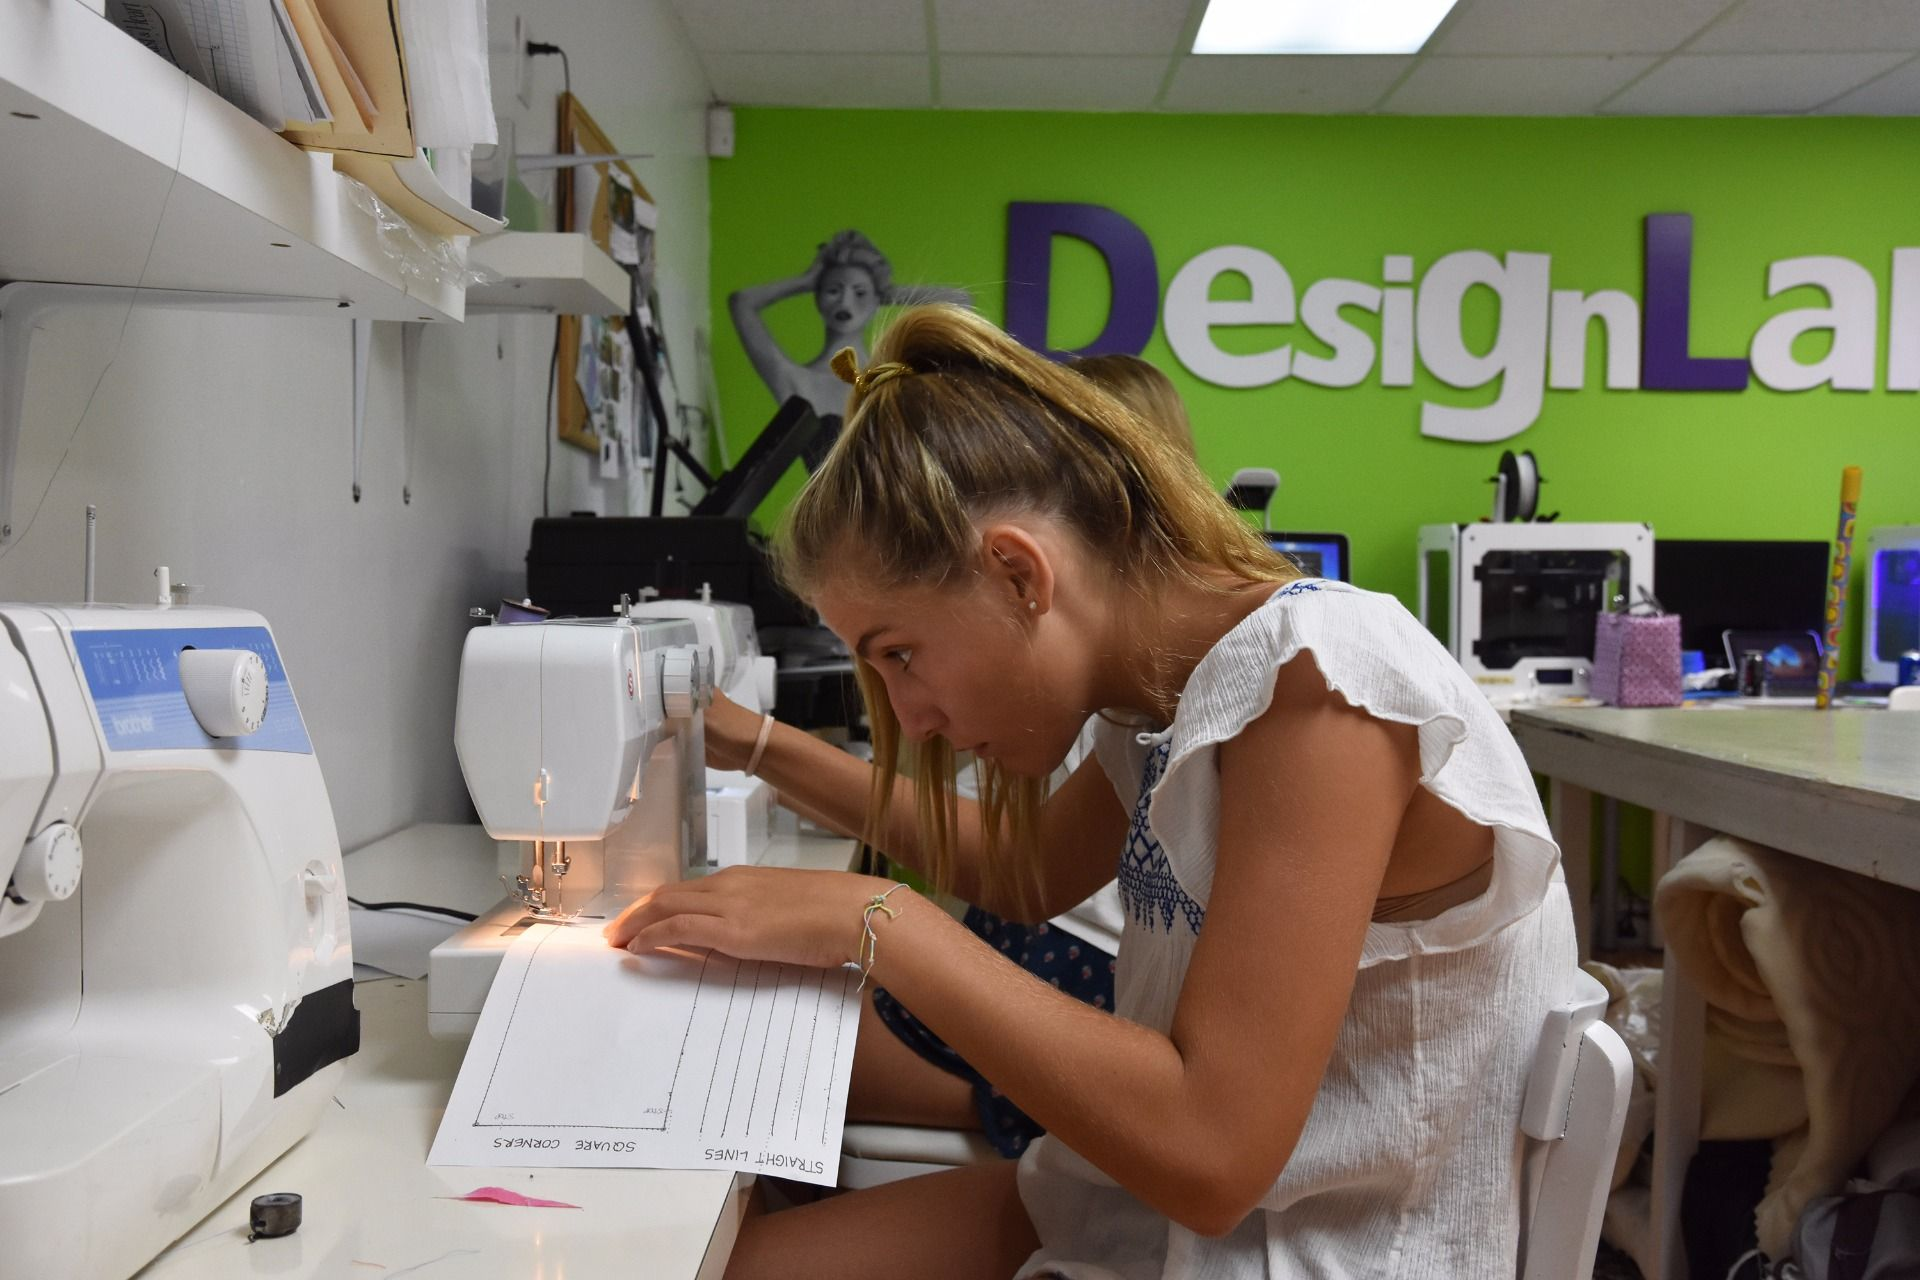 Miami, Summer Plus Design Lab